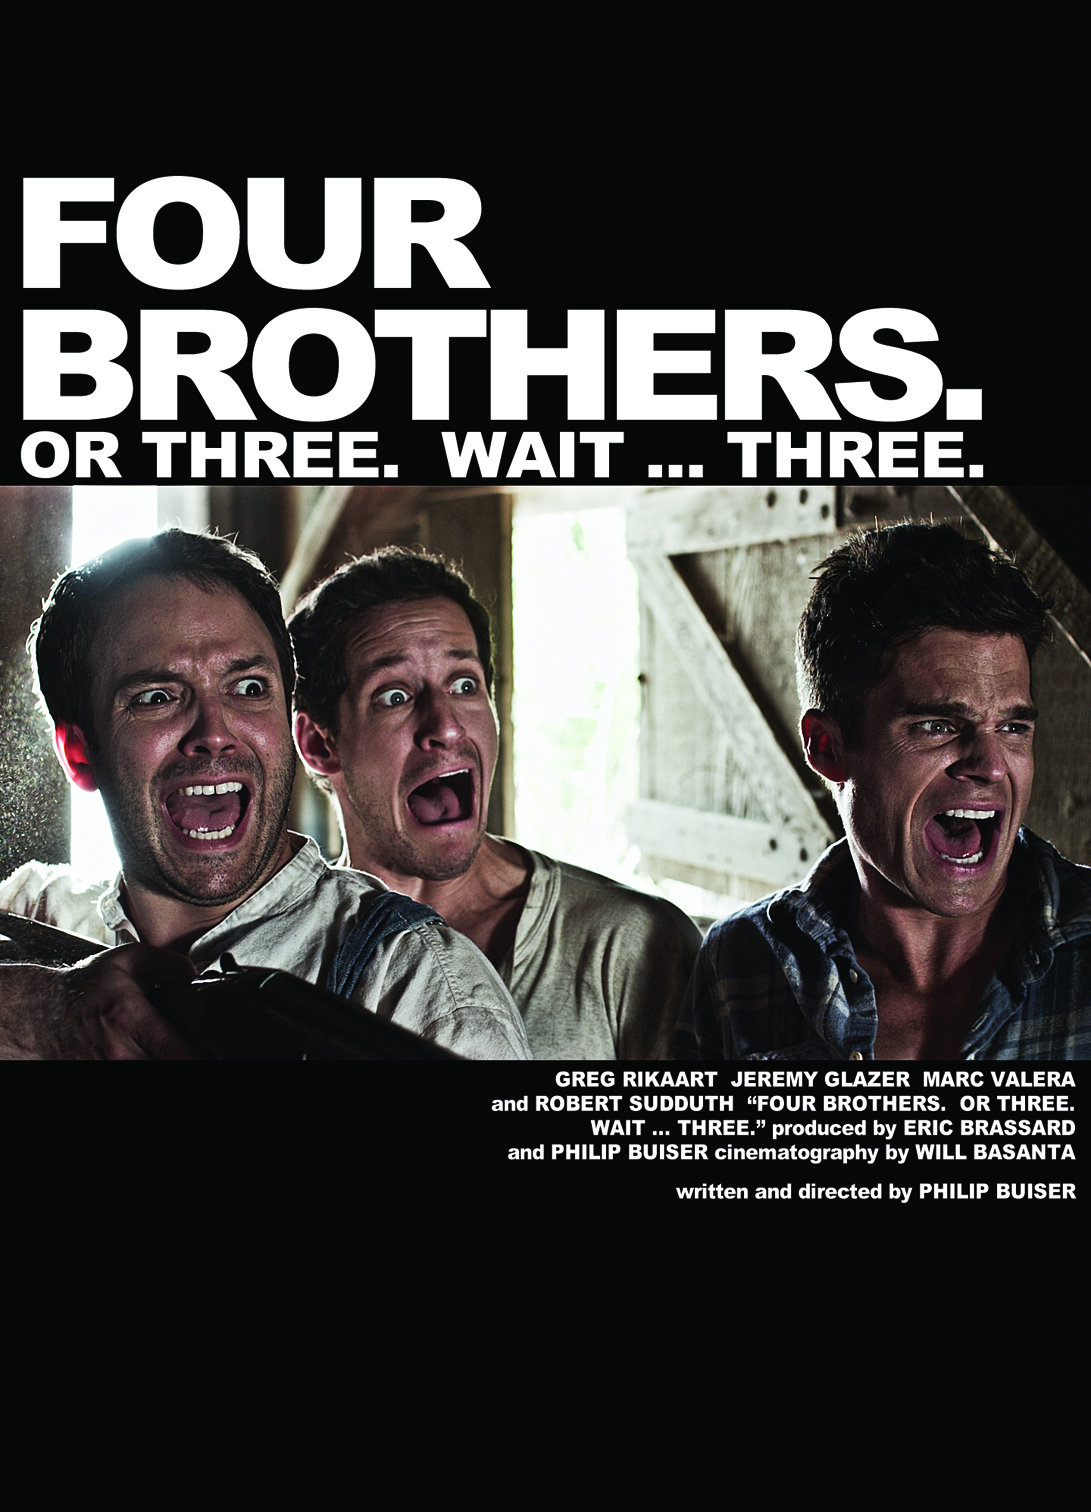 the Four Brothers. Or Three. Wait ... Three. full movie in hindi free download